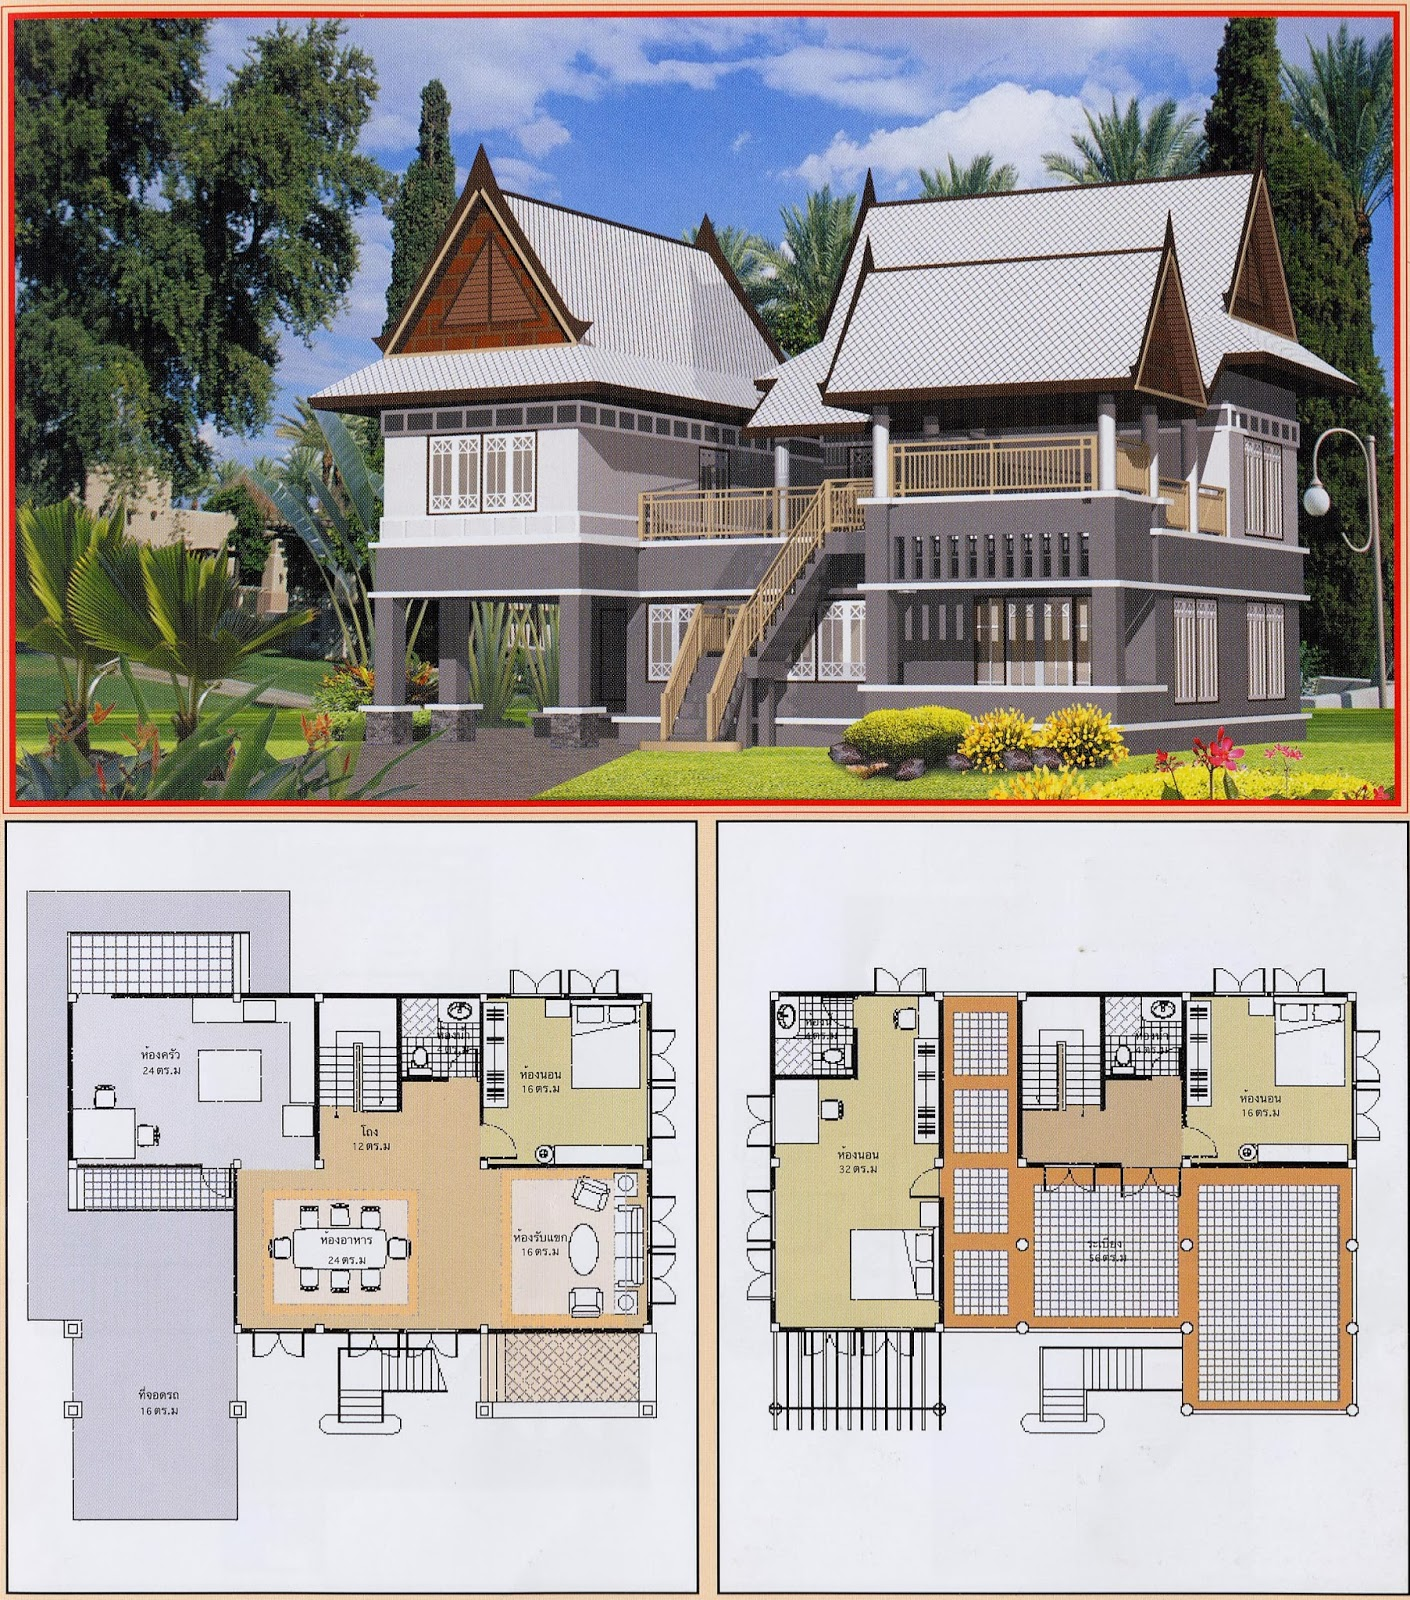 Architecture art khmer thai villa house plan for Home plan collection